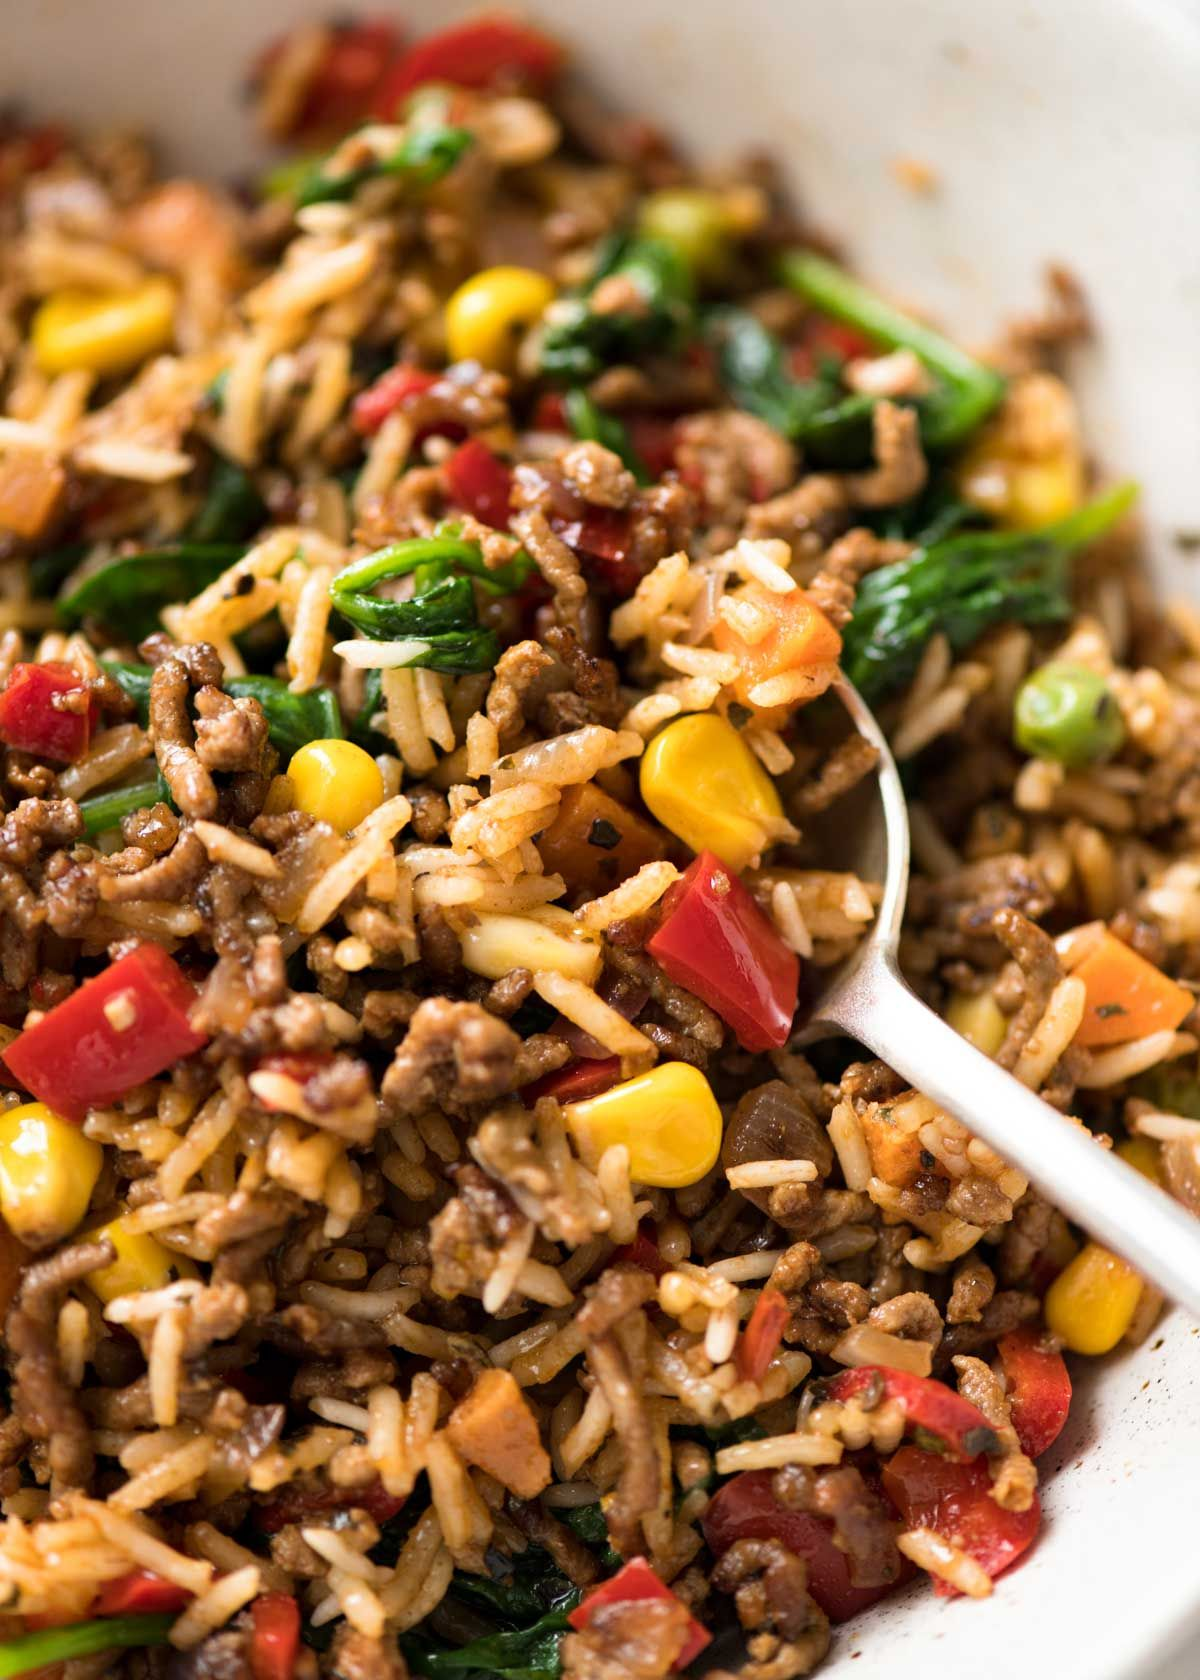 Beef And Rice With Veggies Recipe Food Recipes